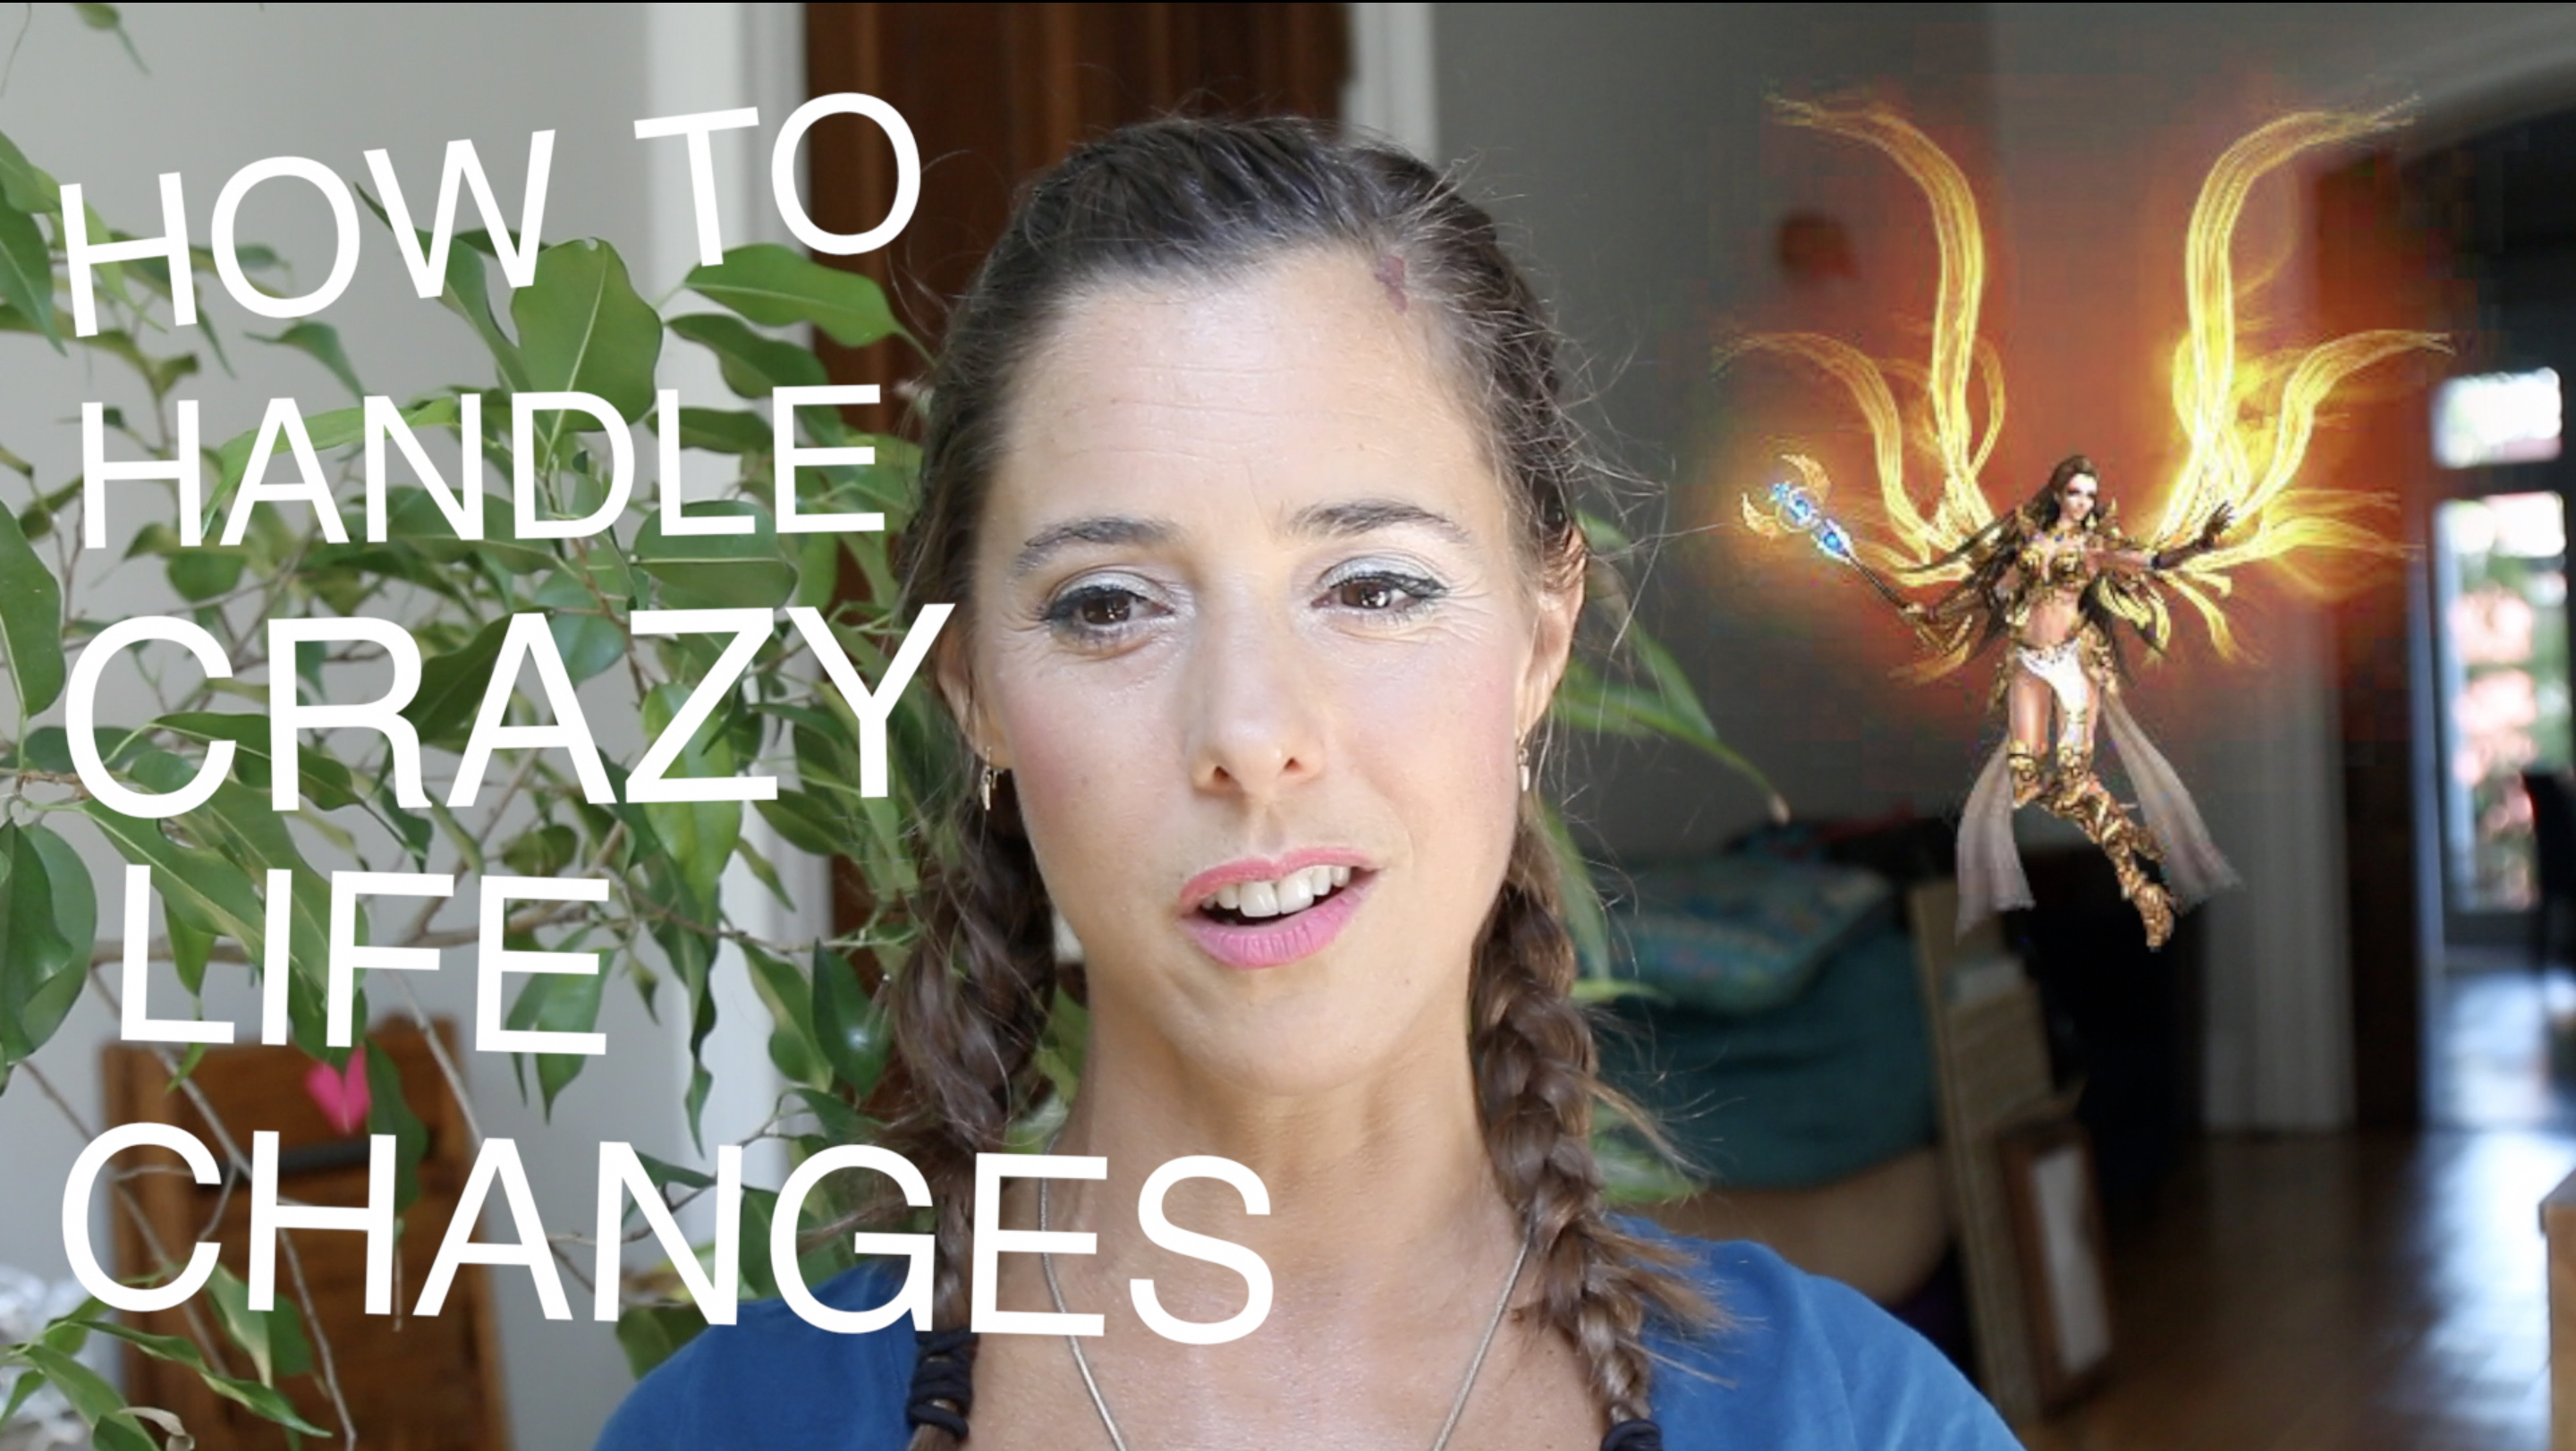 How To Handle Crazy Life Changes